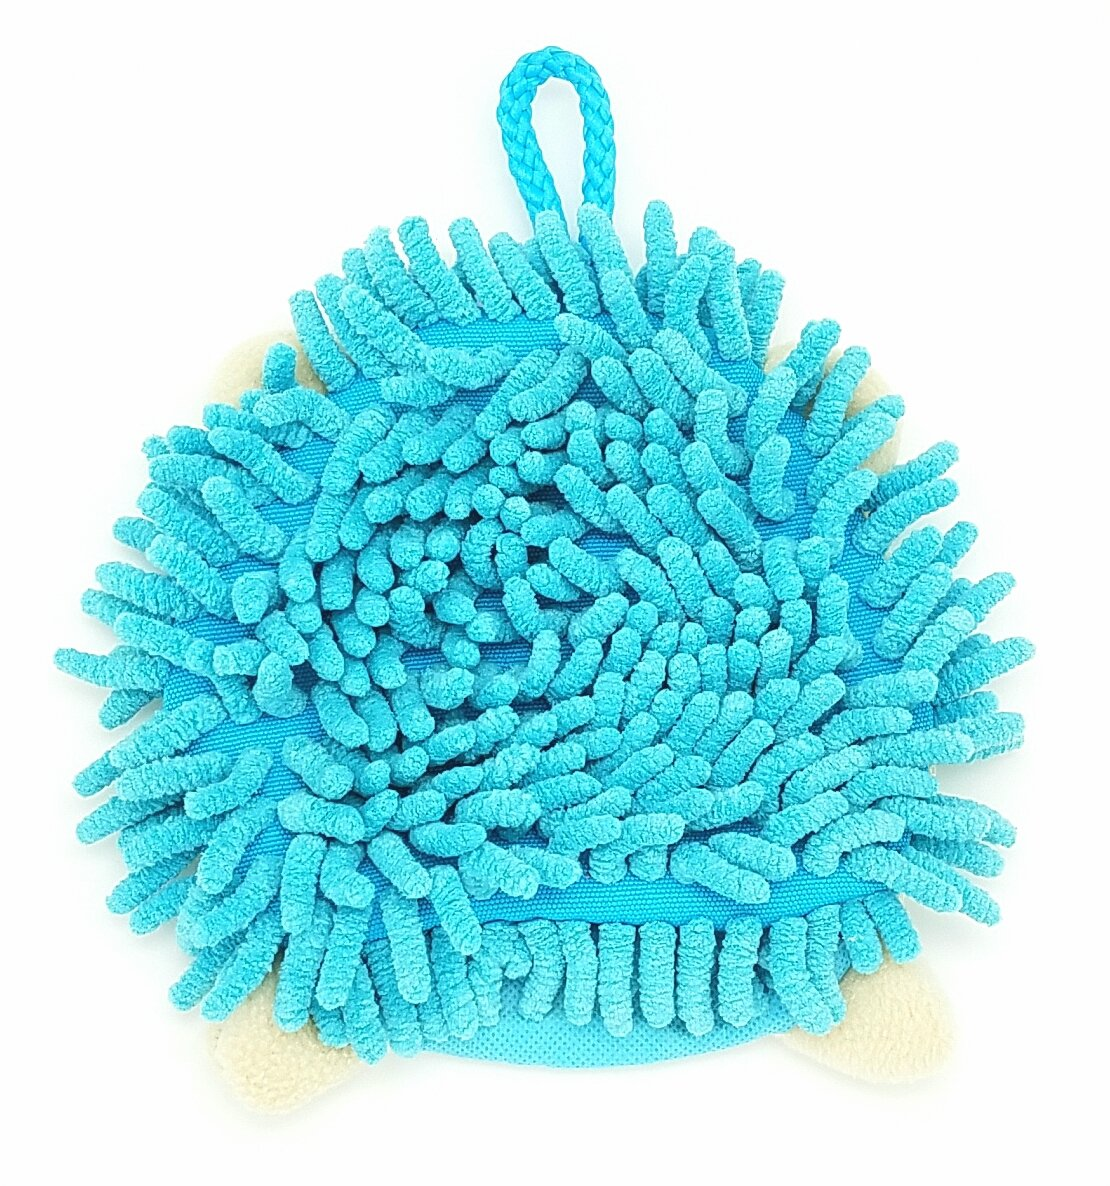 Super Hedgehog Duster Green Colorful Multipurpose Microfiber Cleaning Mitten with Soft Dust-Attracting Strands and Hanging Loop